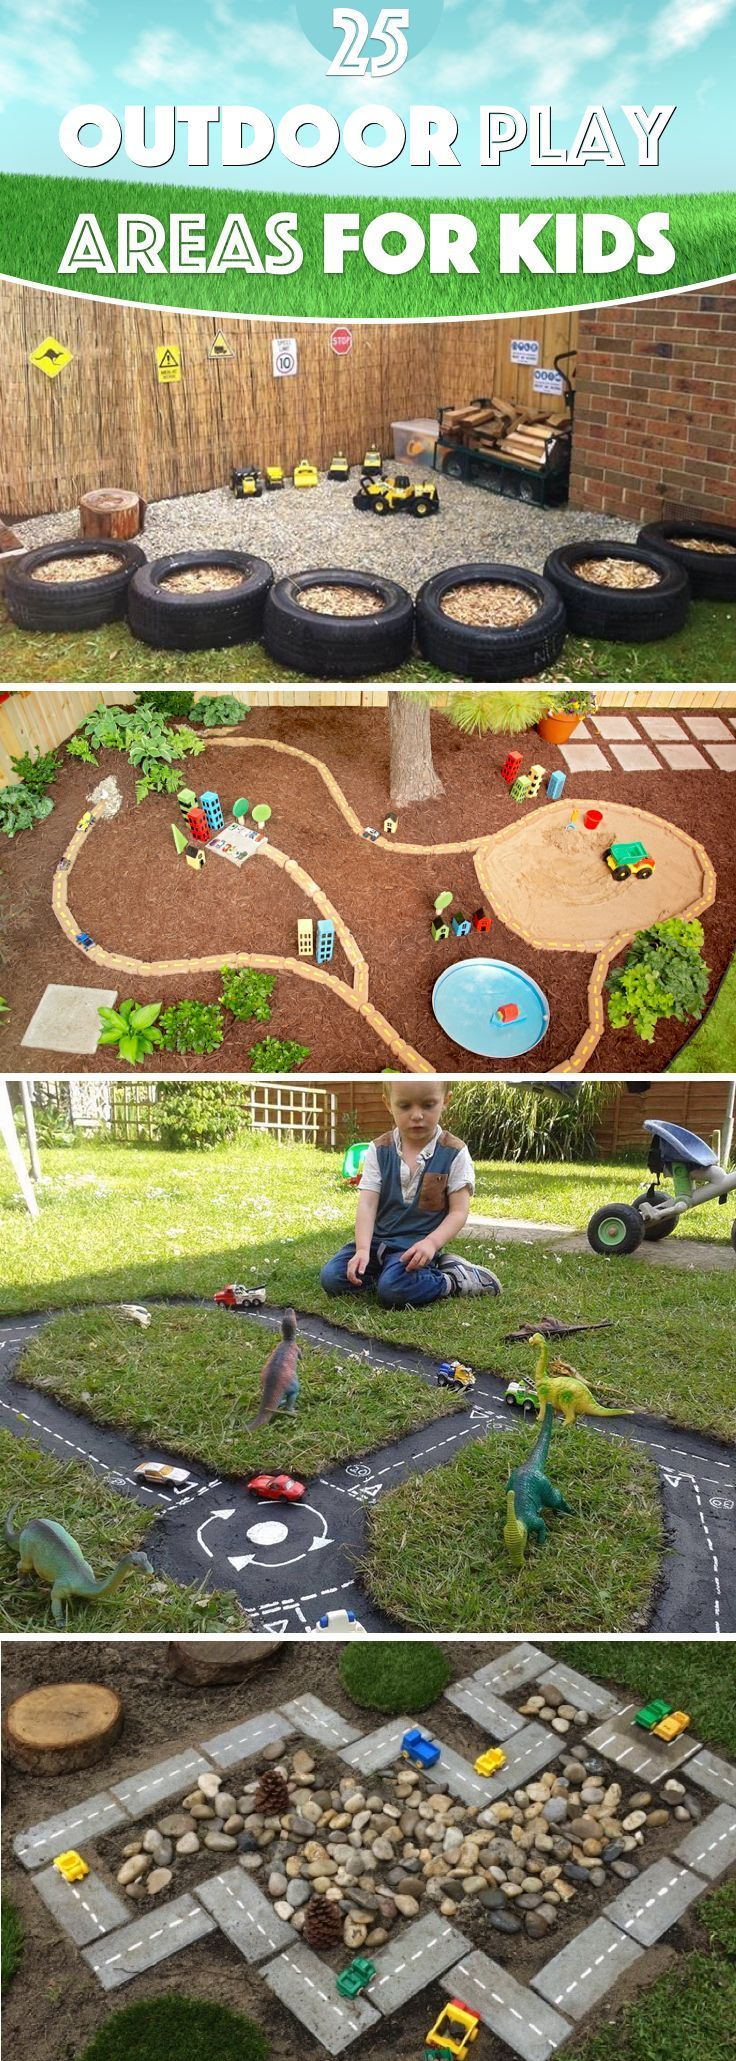 25 Outdoor Play Areas For Kids Transforming Regular Backyards Into Playtime Paradises #diyhomedecor